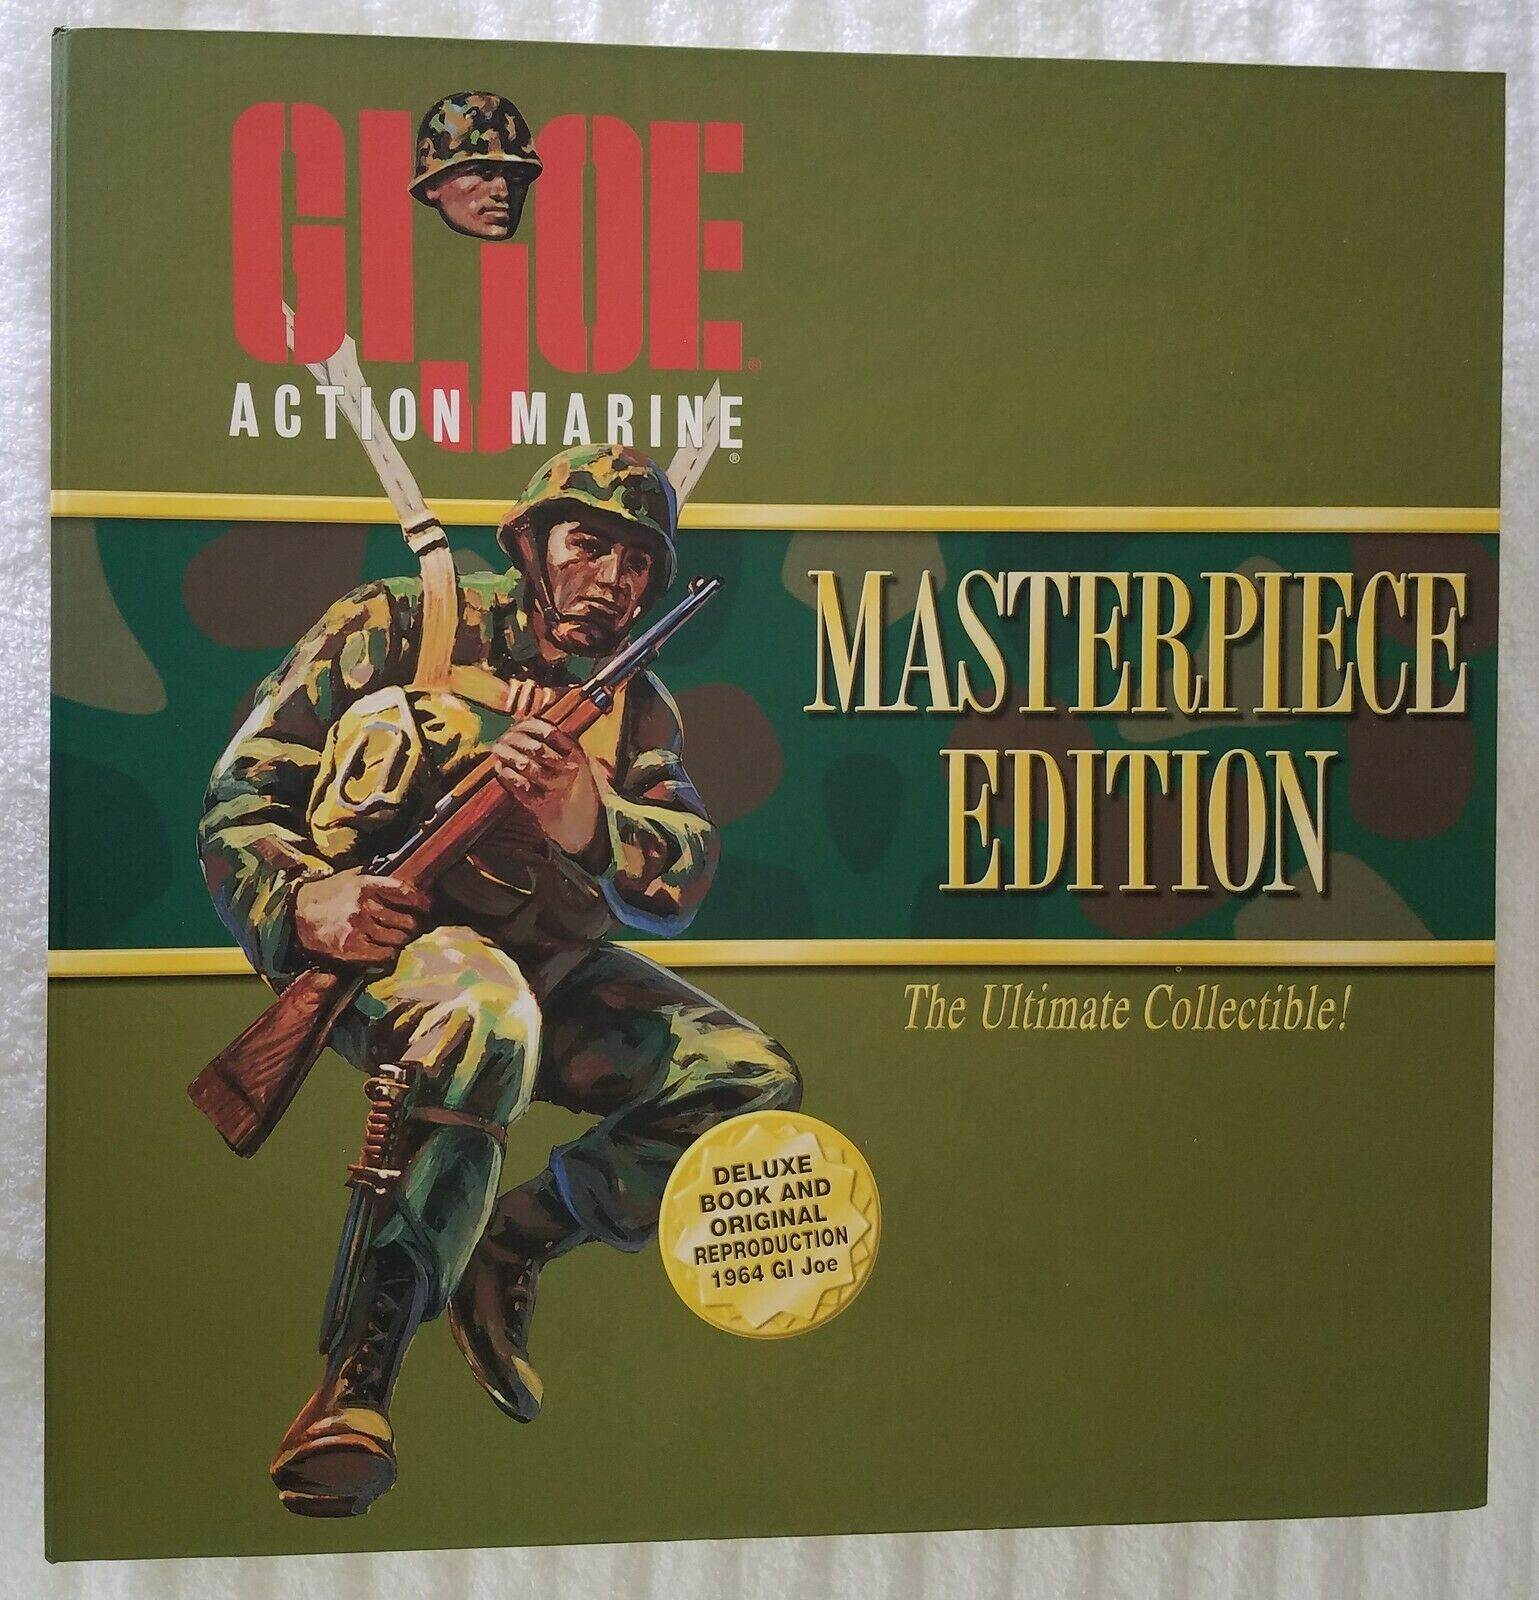 G.I. JOE MASTERPIECE EDITION ACTION MARINE AFRICAN AMERICAN + GI JOE BOOK